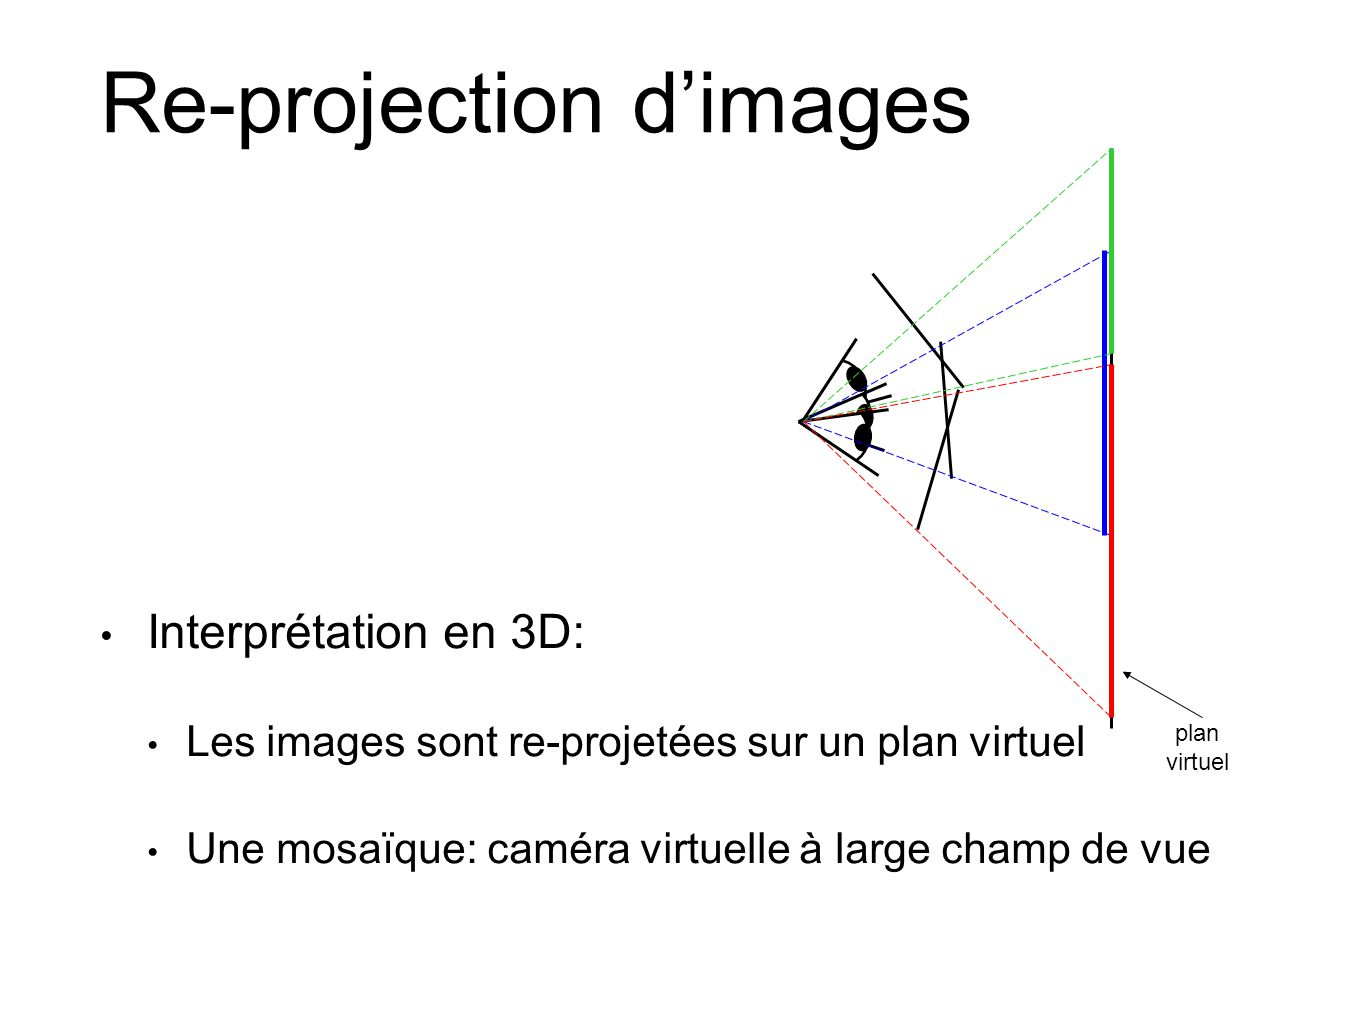 Re-projection d'images